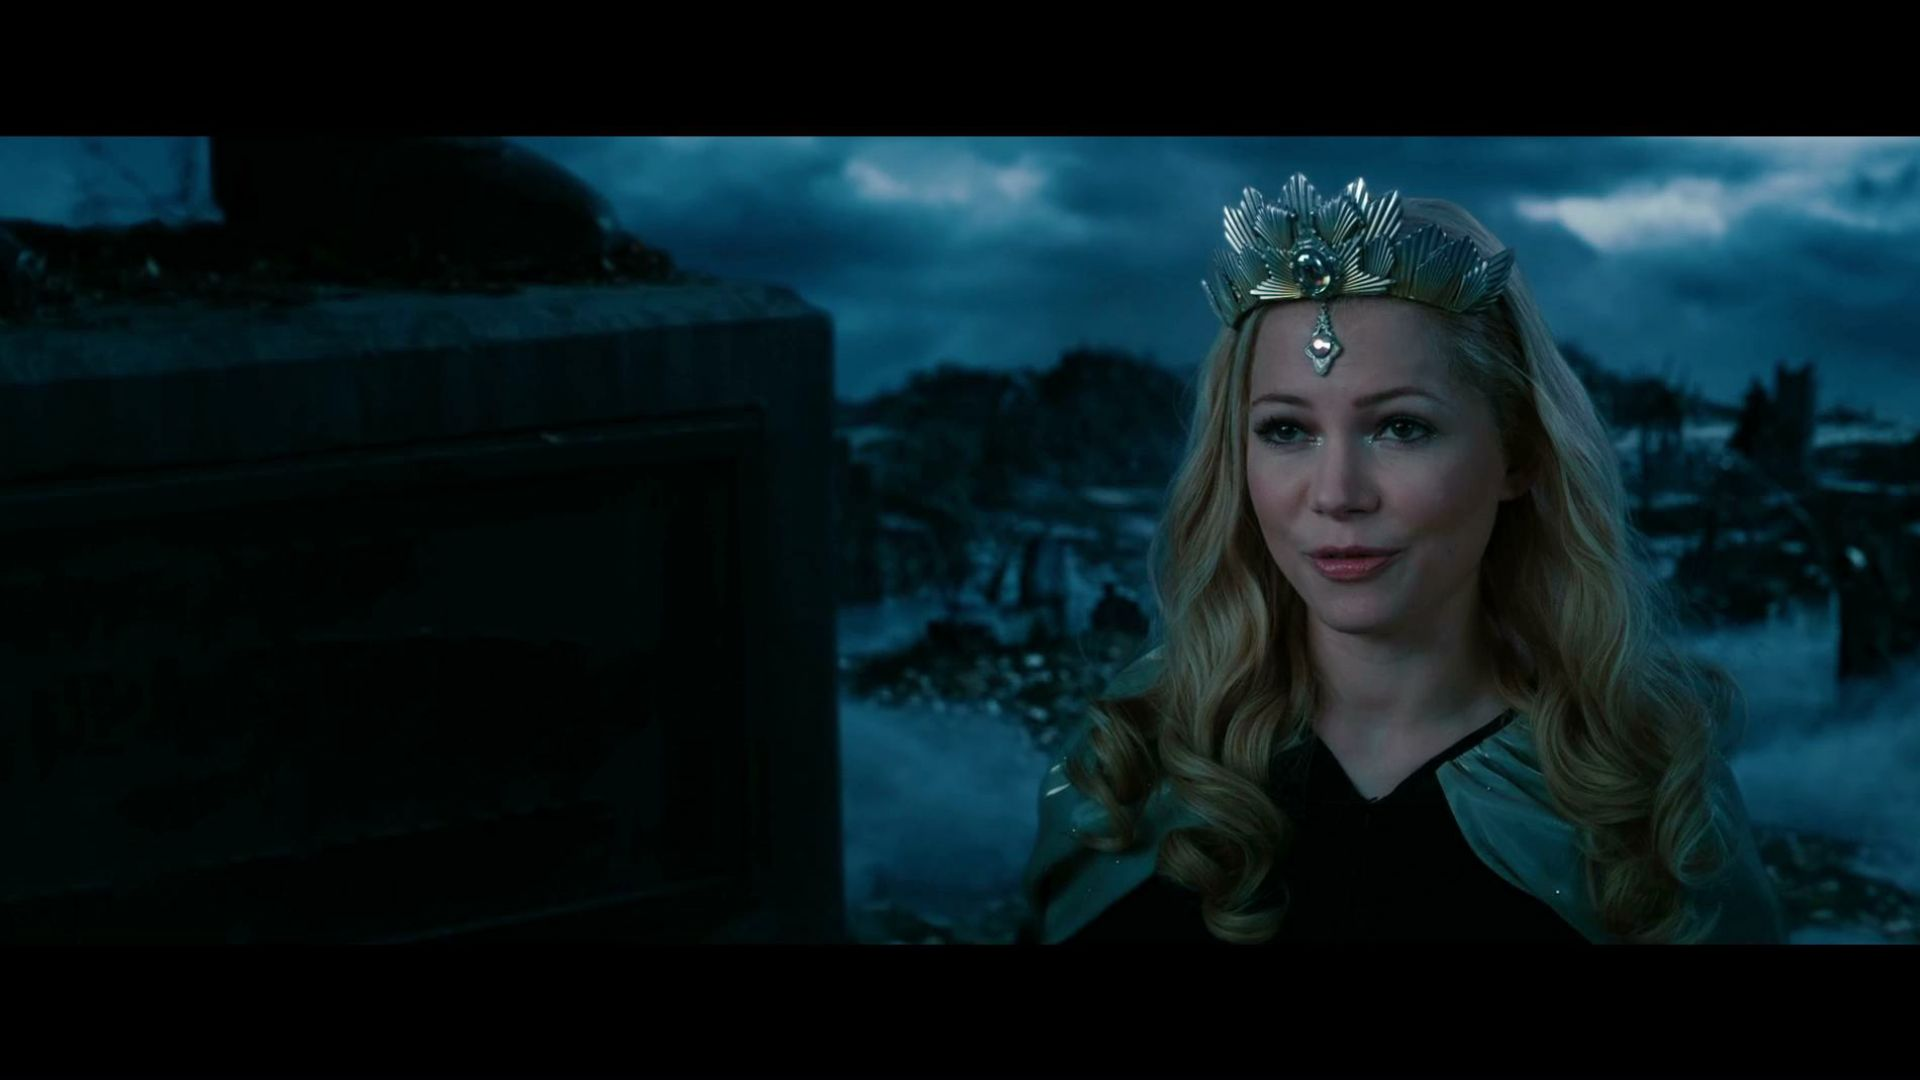 Did those crows just say we're gonna die? Oz the Great and Powerful